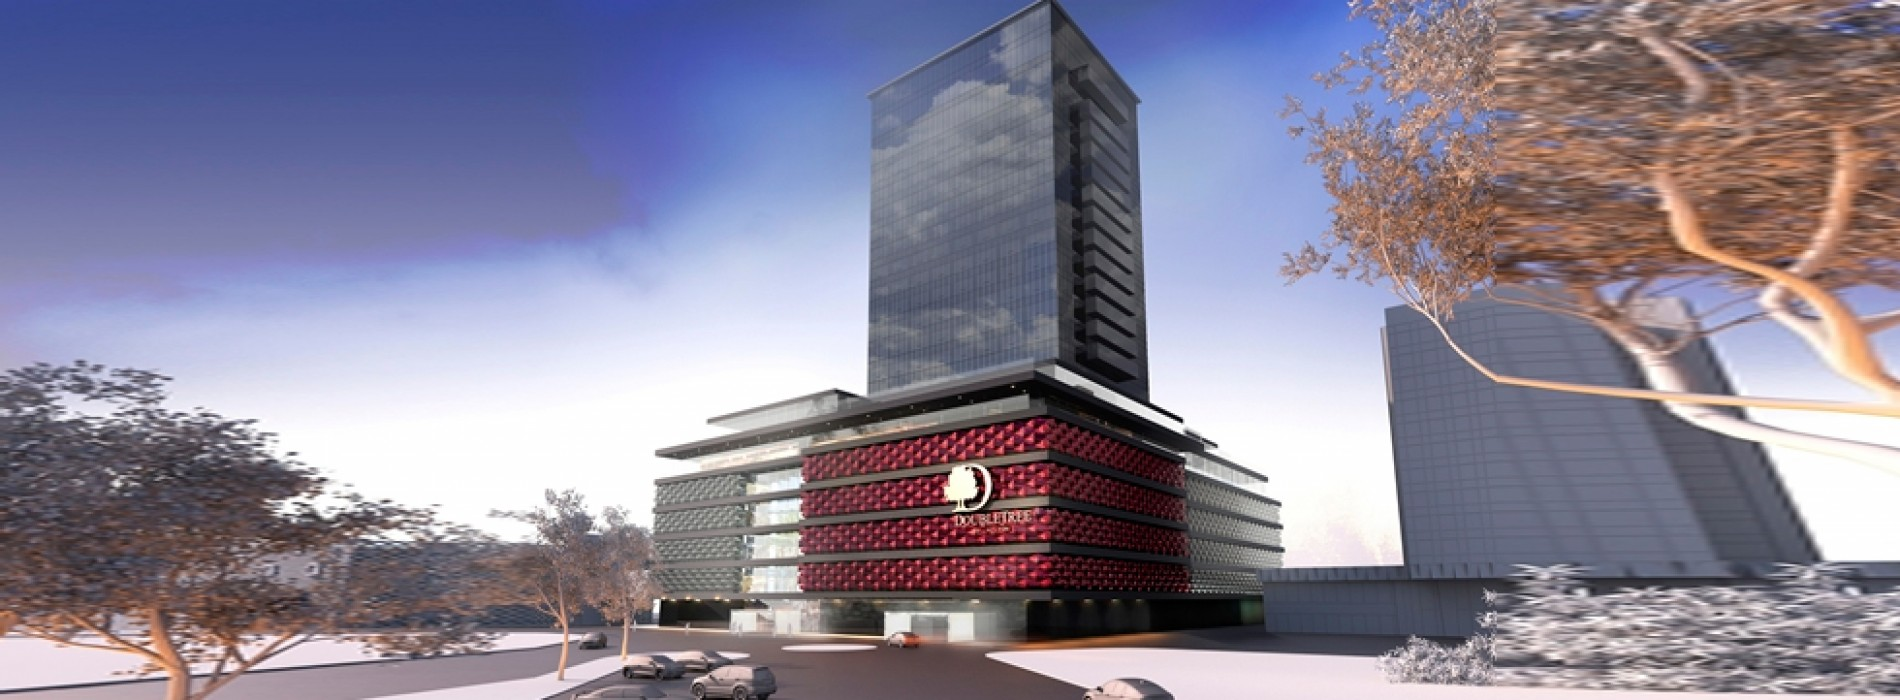 Doubletree by Hilton set to debut in Belarus